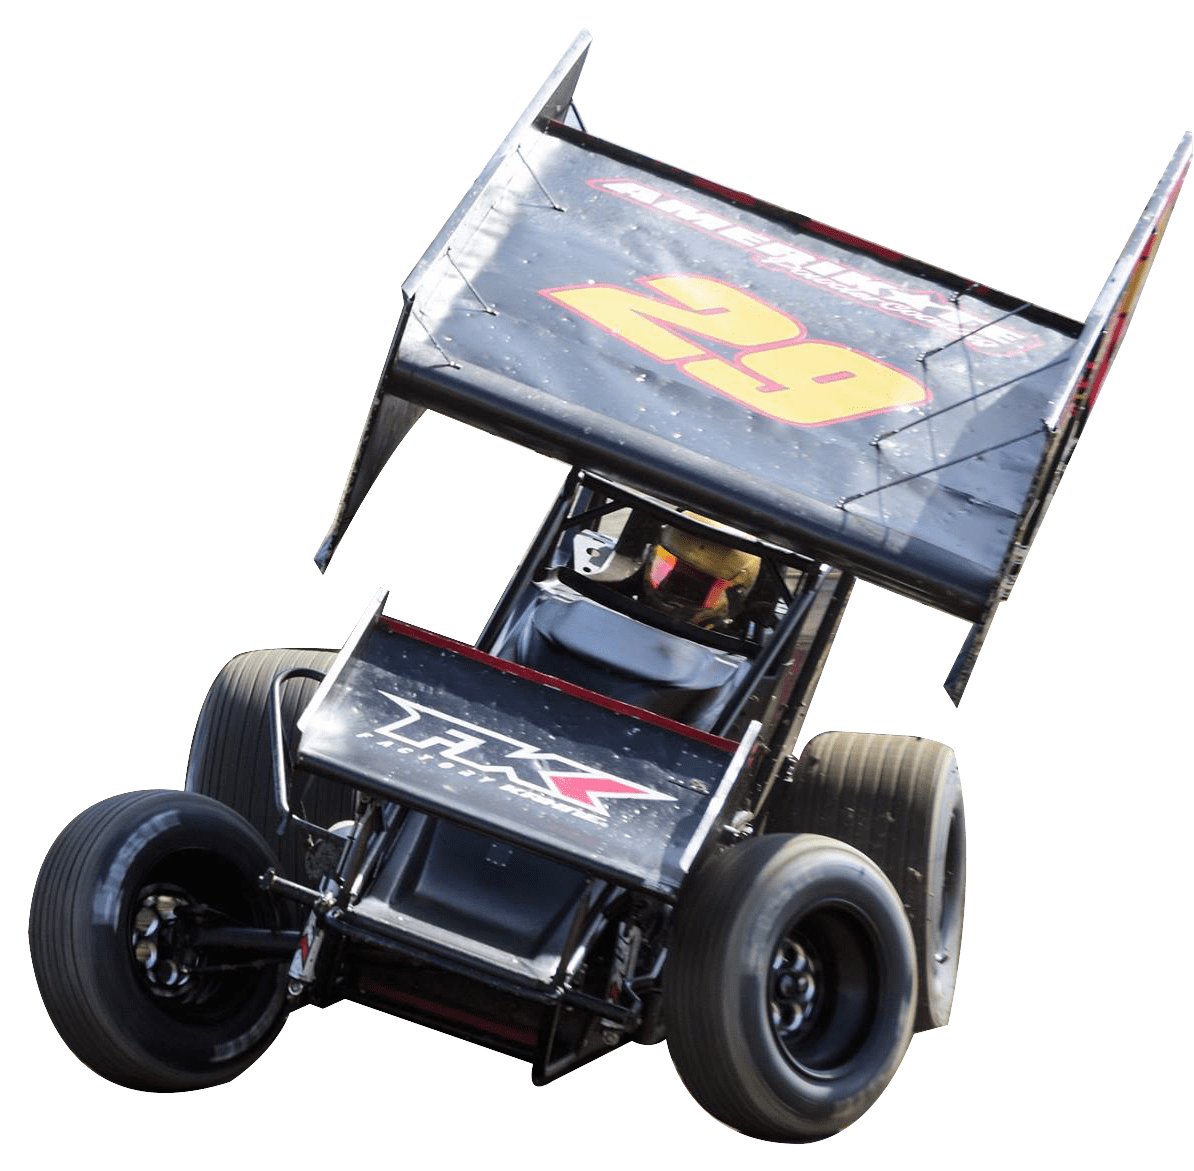 King of the West NARC Sprints – We have a checkered past!